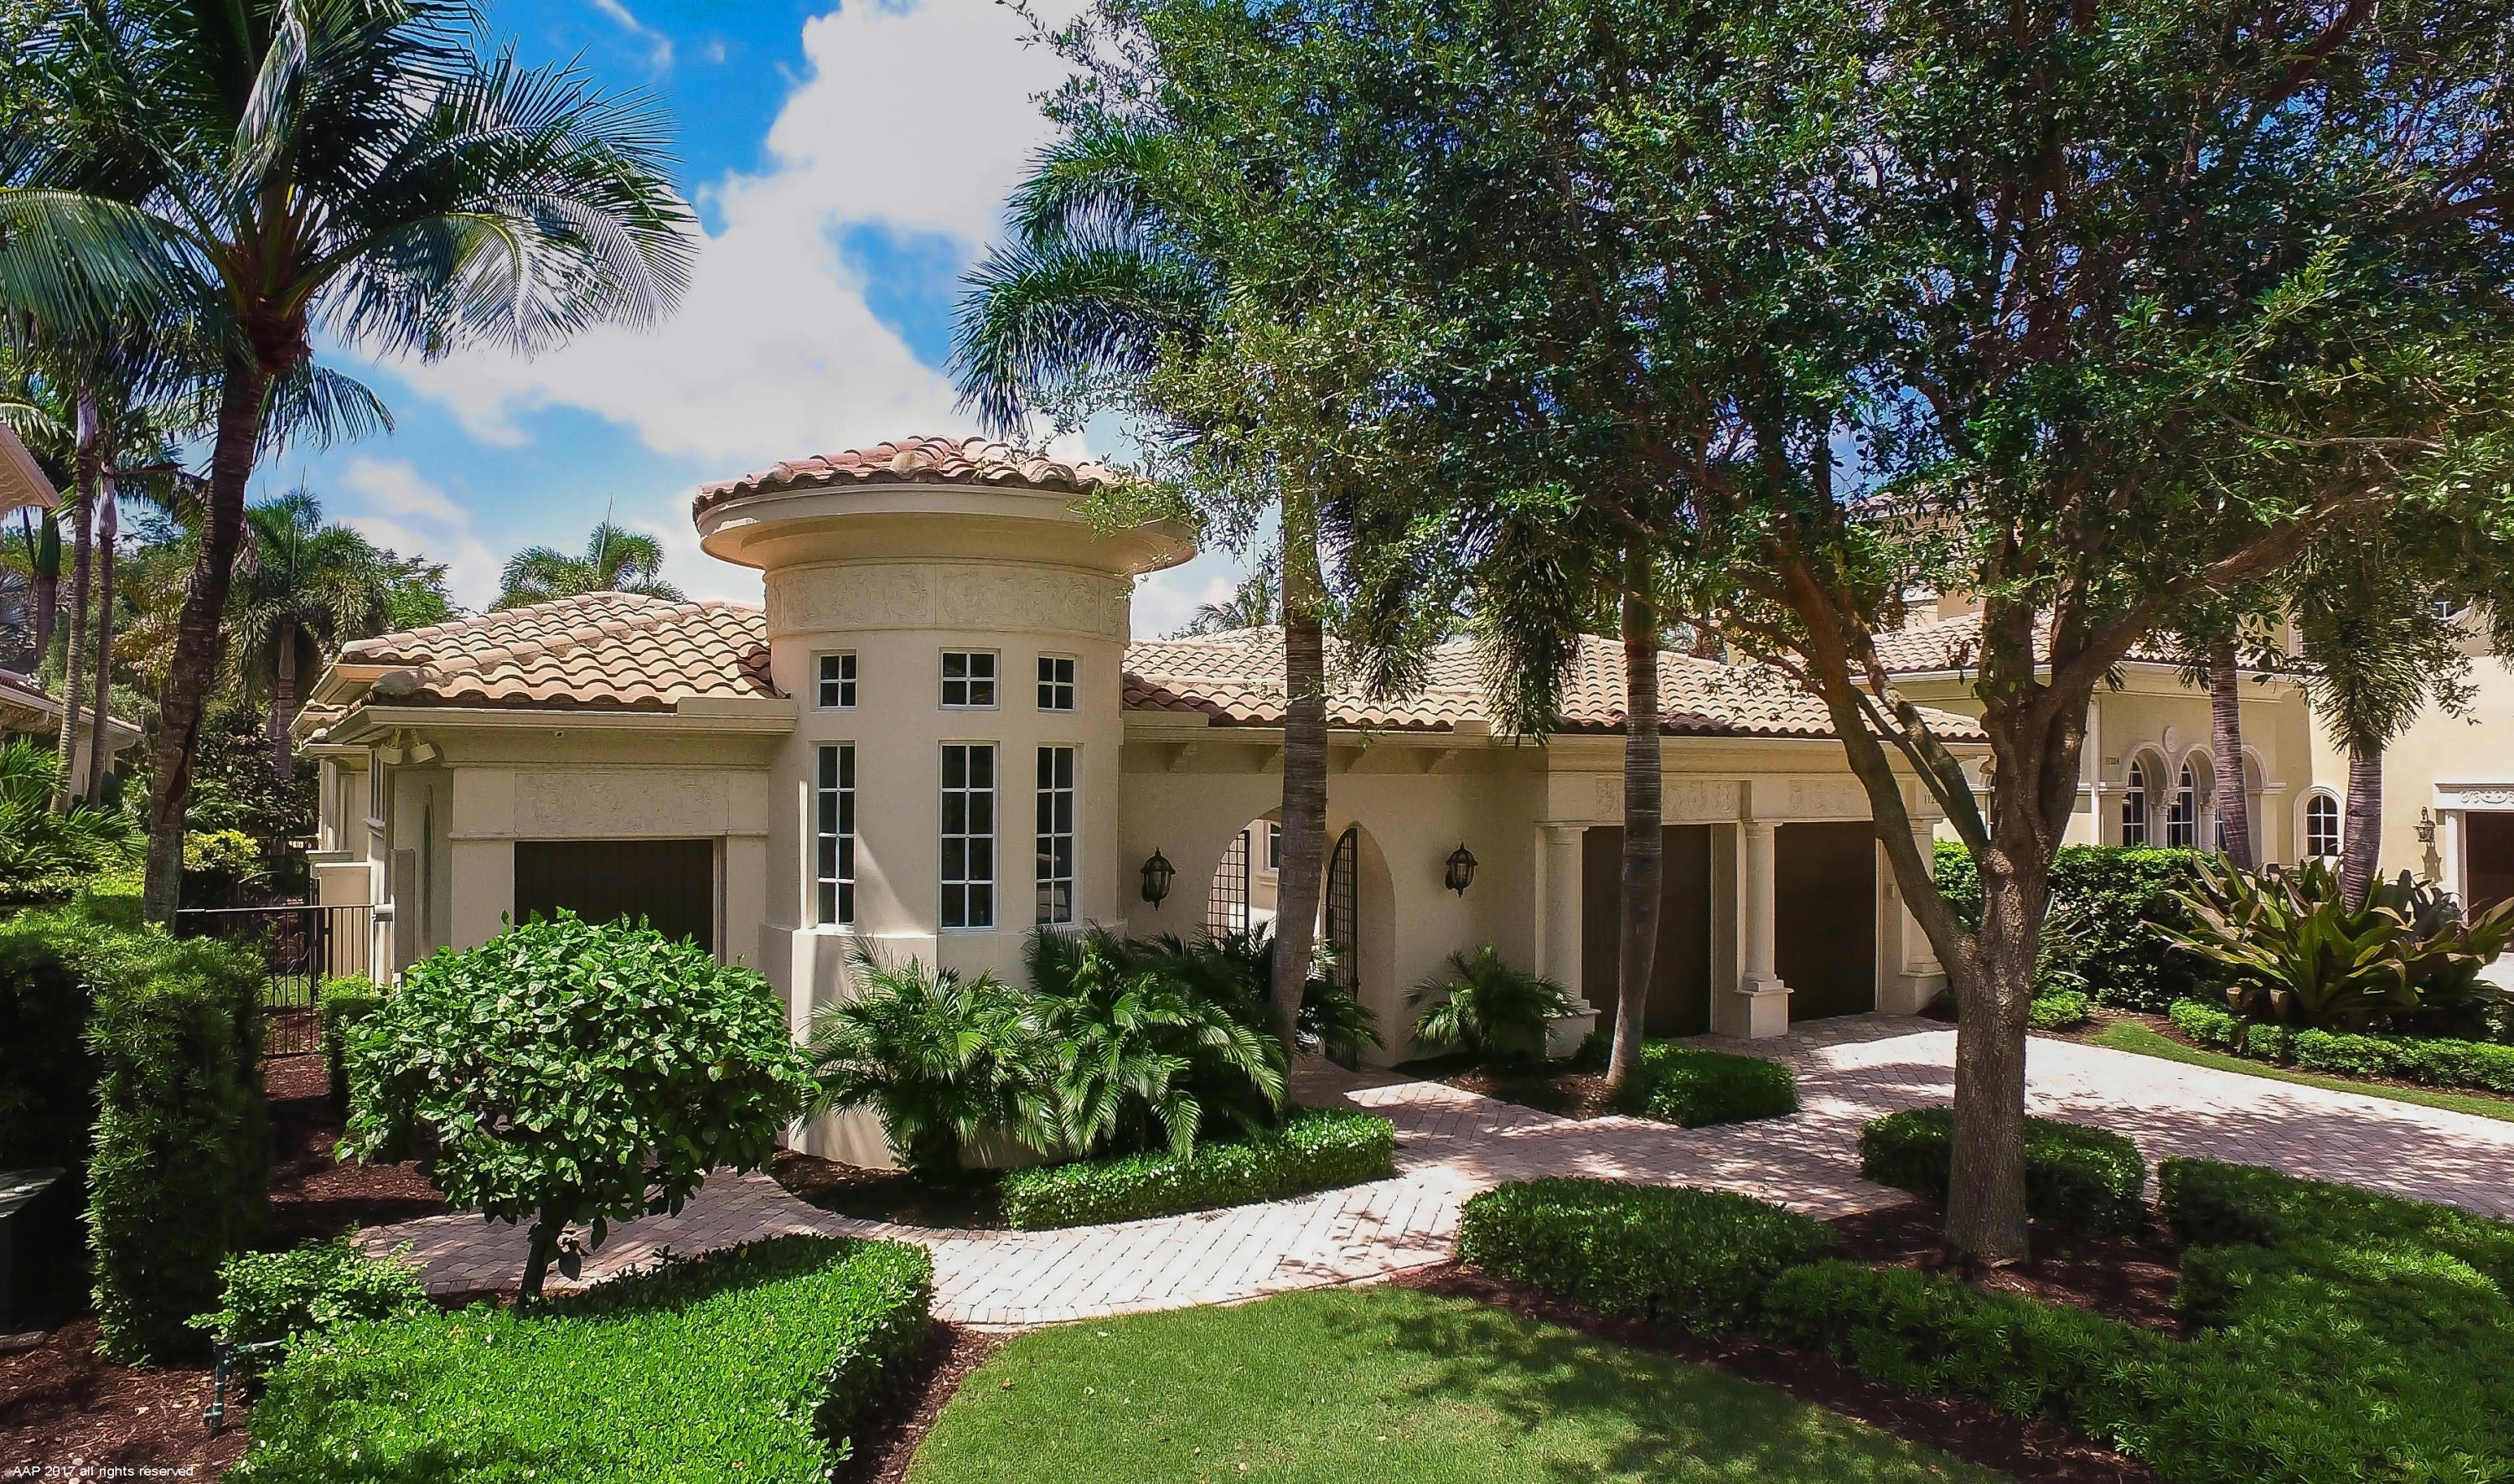 11206 Orange Hibiscus Lane, Palm Beach Gardens, Florida 33418, 3 Bedrooms Bedrooms, ,3.2 BathroomsBathrooms,A,Single family,Orange Hibiscus,RX-10546886